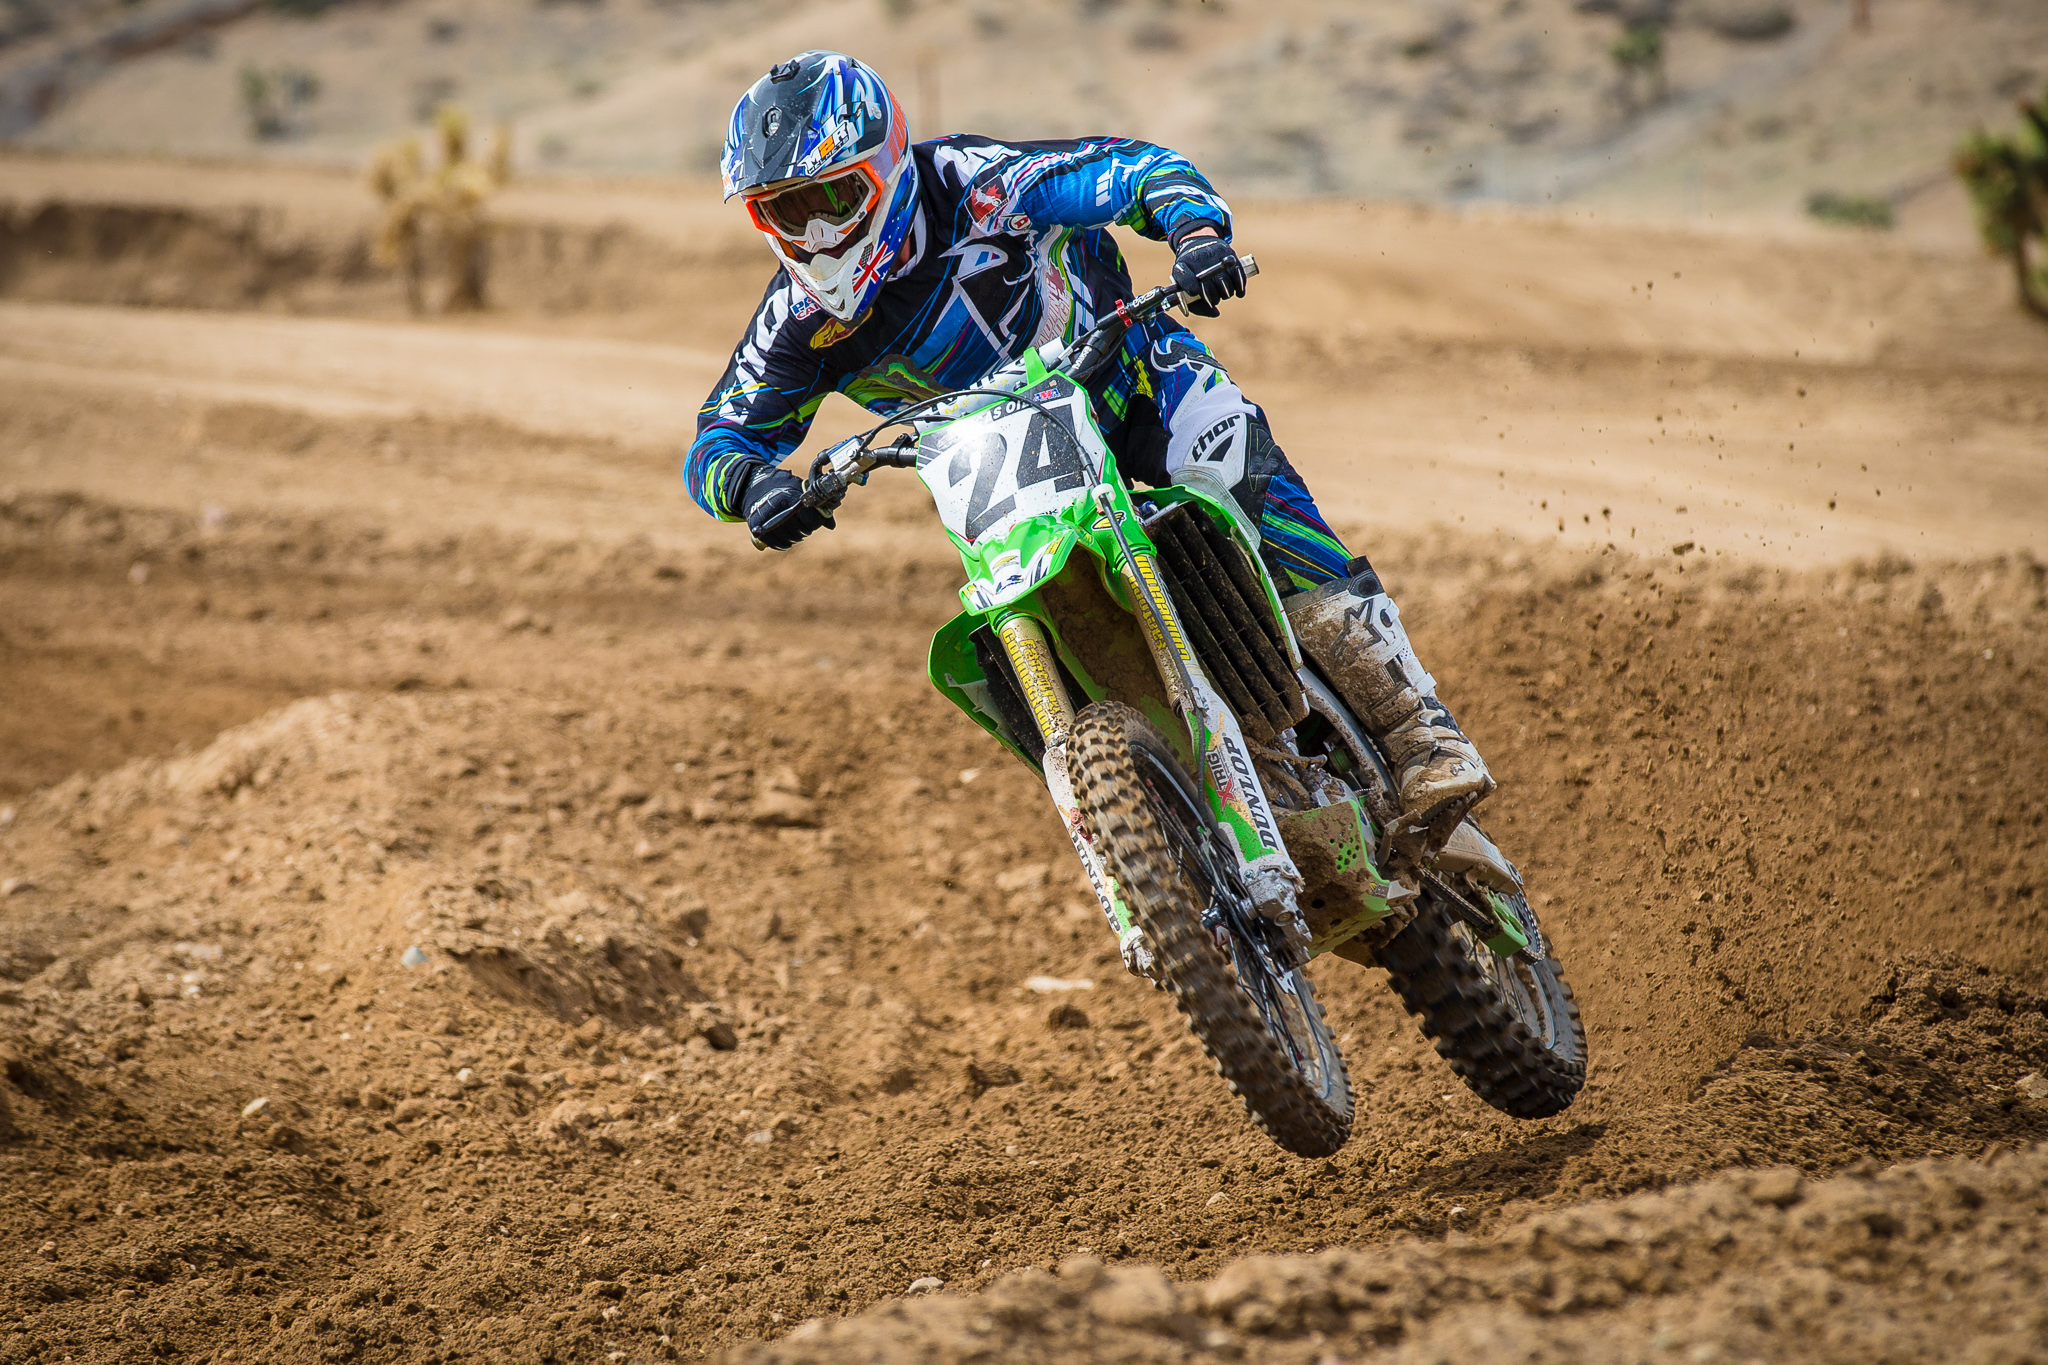 Racer X Films: Competitive Edge